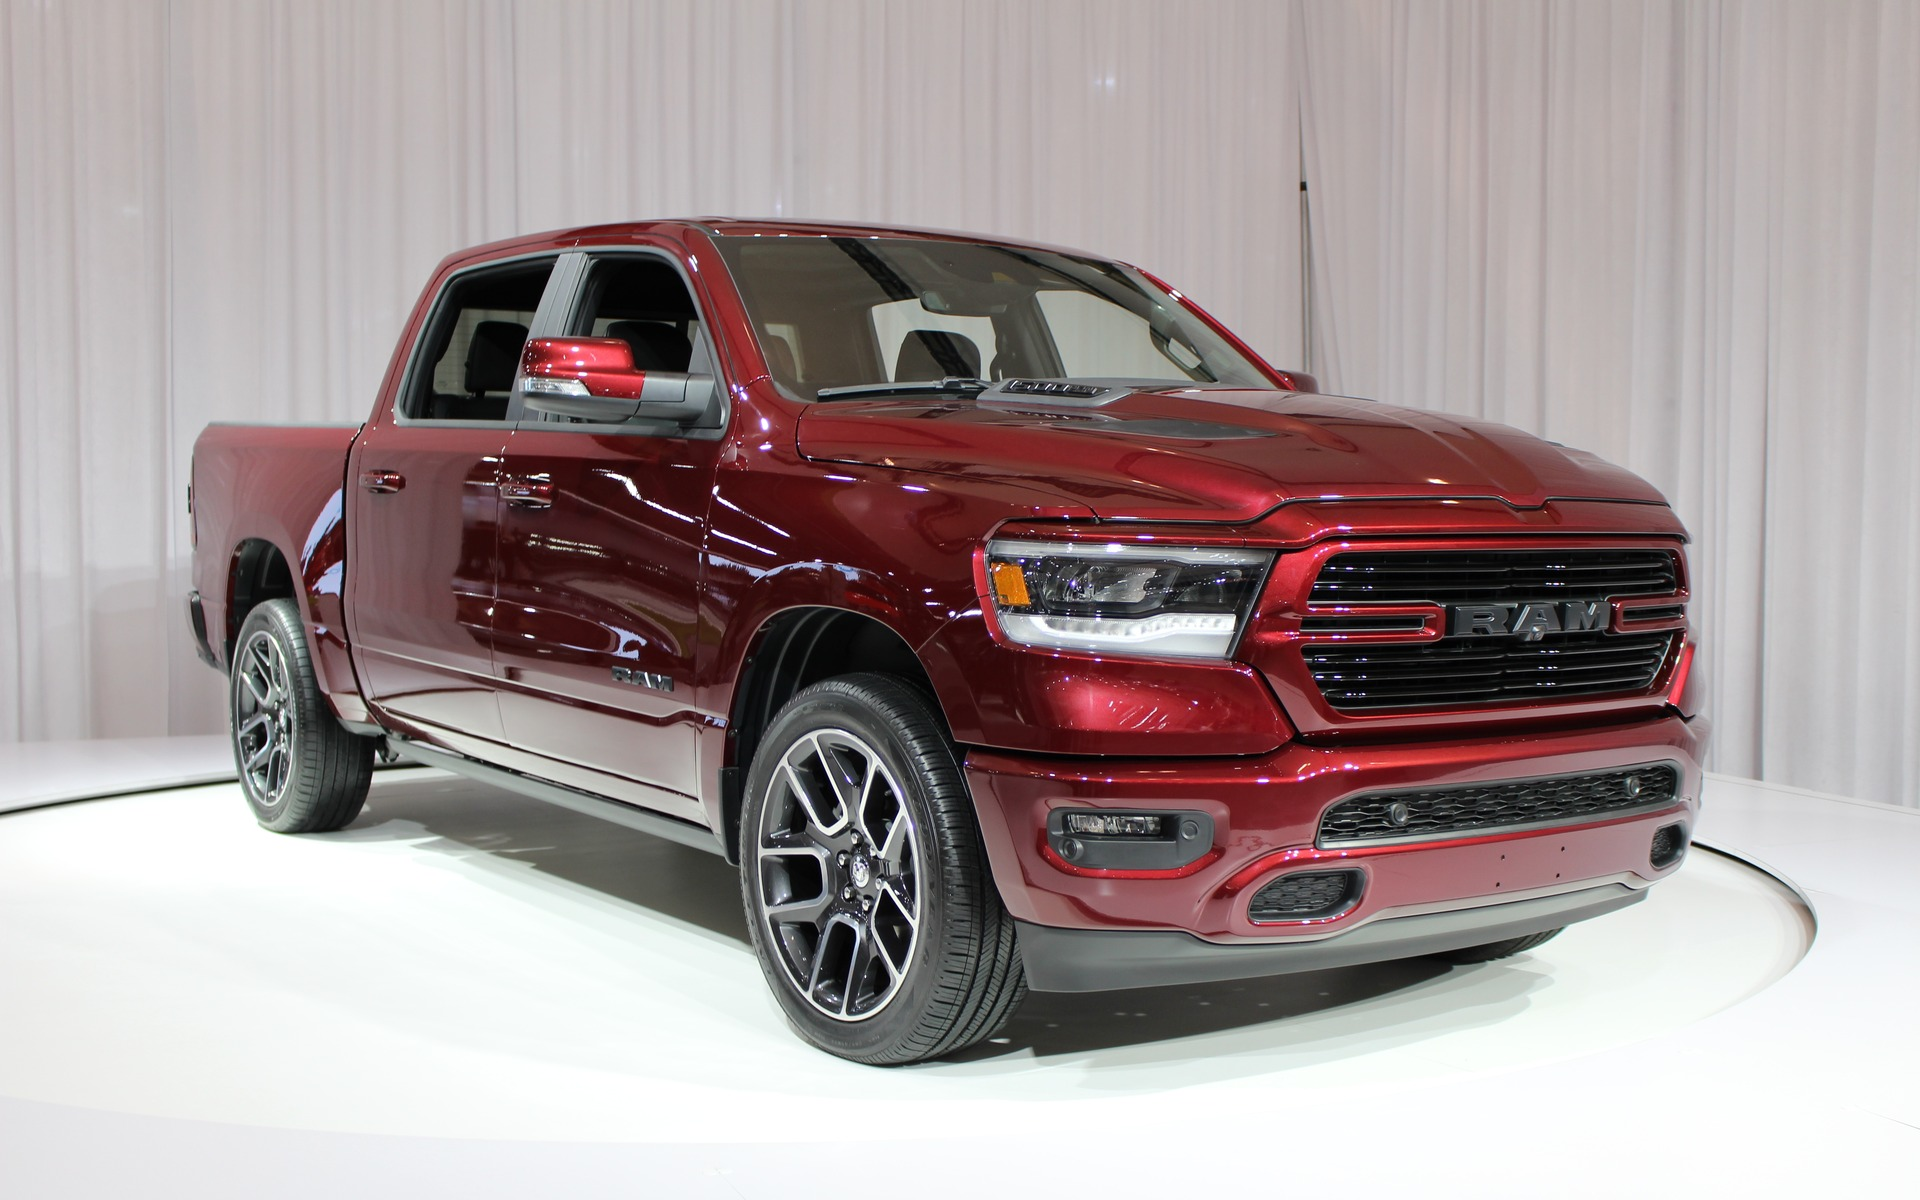 2019 ram 1500 sport a canadian exclusivity the car guide. Black Bedroom Furniture Sets. Home Design Ideas